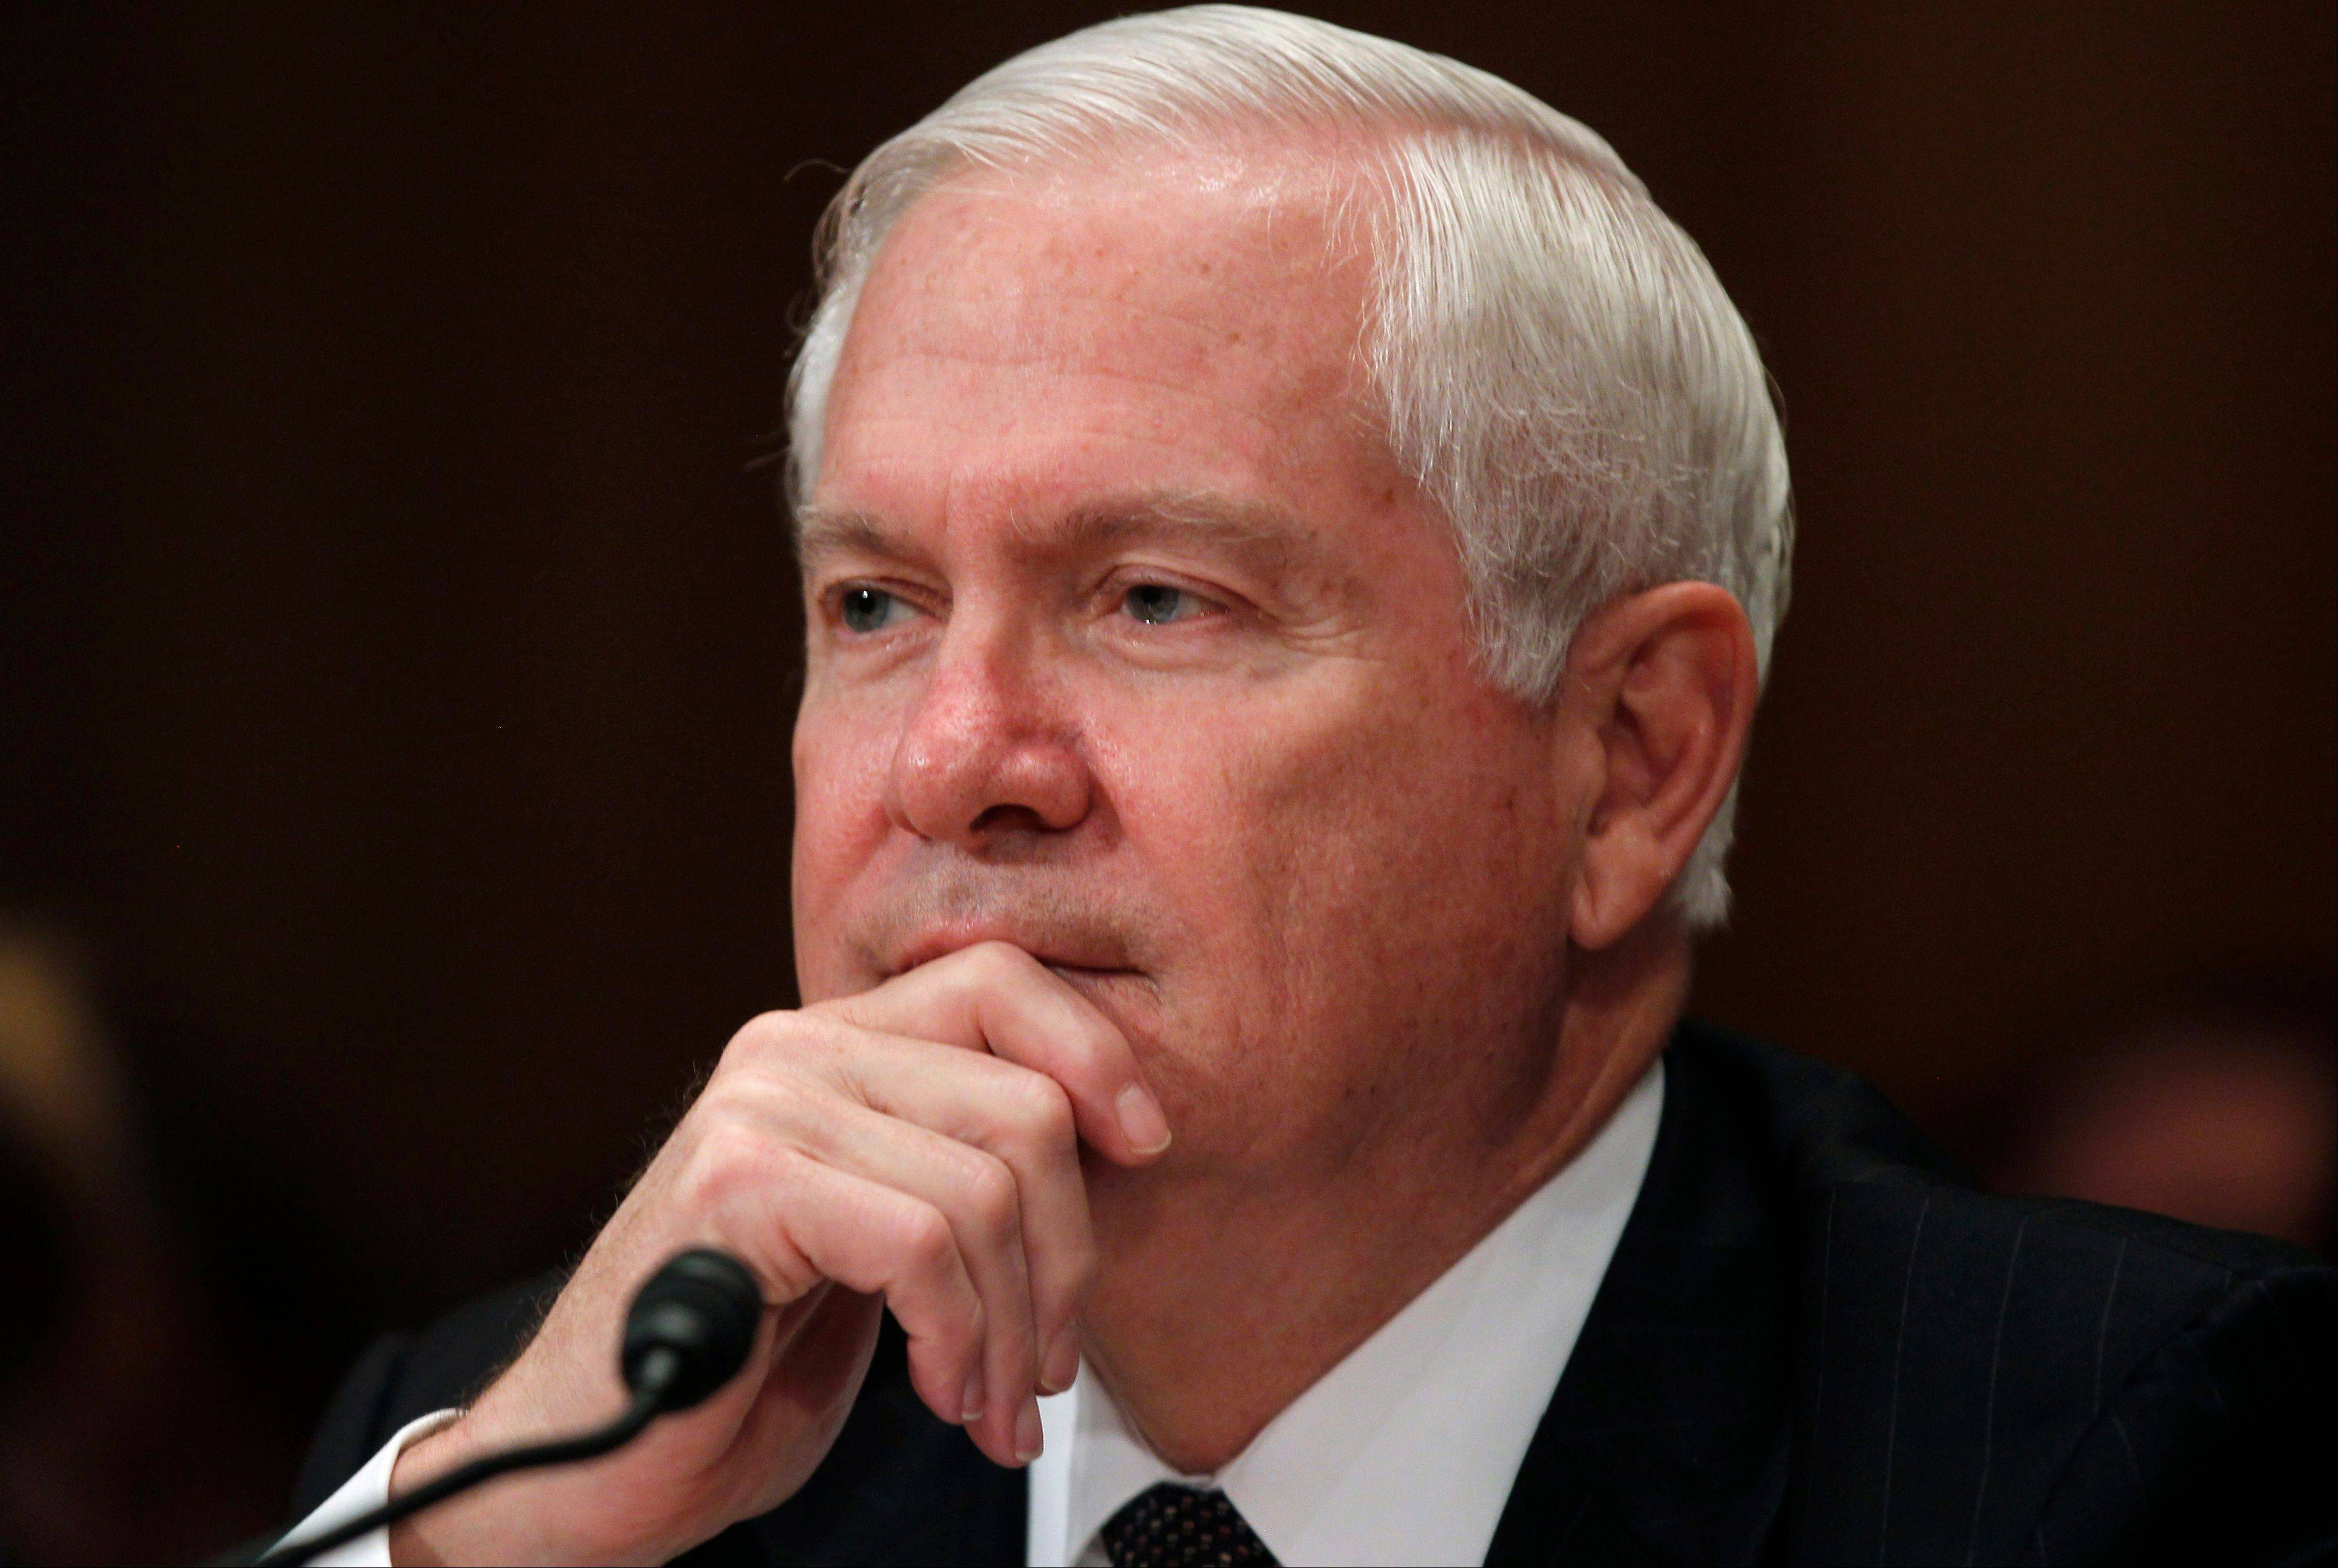 Former Secretary of Defense Robert Gates asserts in a new memoir that President Barack Obama grew frustrated with U.S. policy in Afghanistan and that Vice President Joe Biden has been wrong on nearly every foreign policy and national security issue. He also accuses members of Congress of inquisition-like treatment of administration officials.